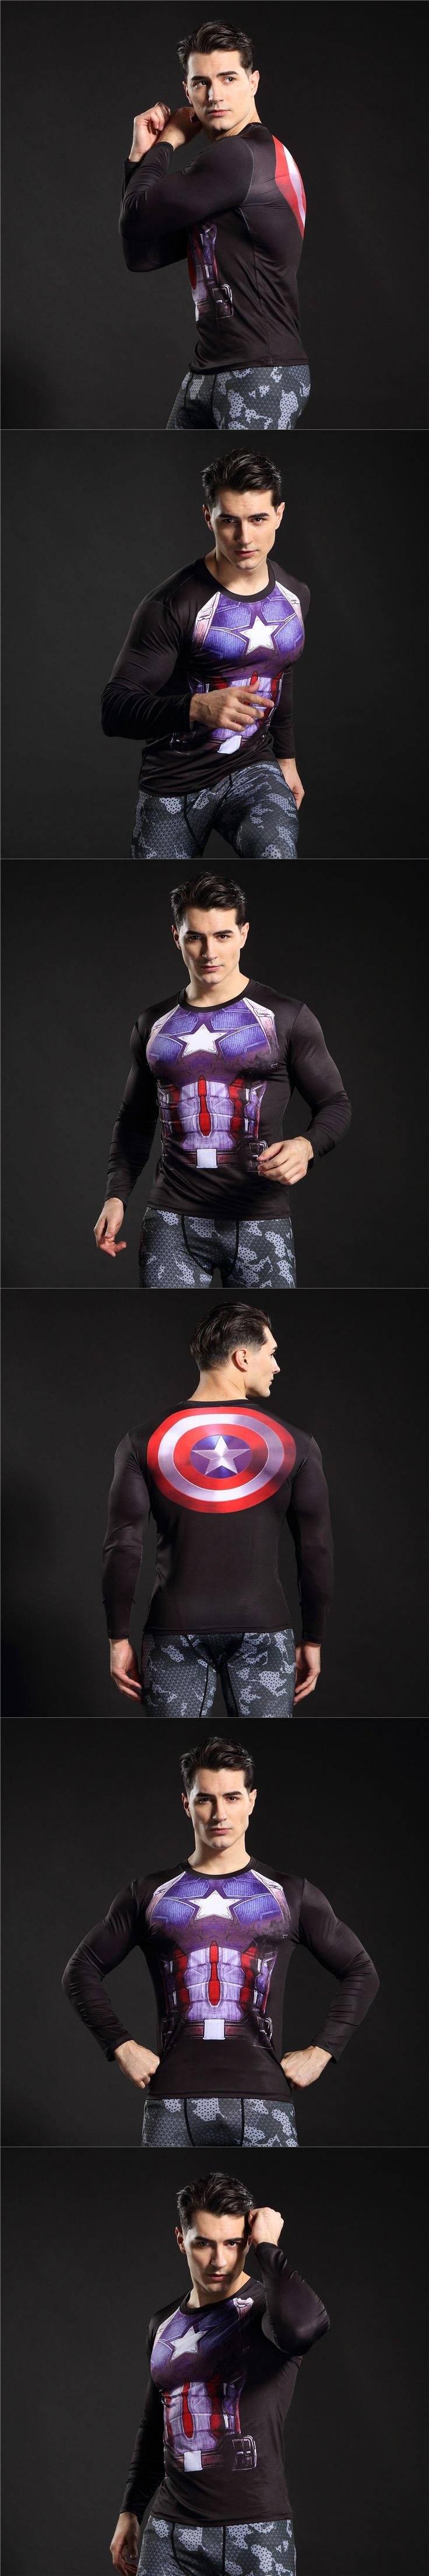 T Shirt Captain America Shield Civil War Tee 3D Printed T-shirts Men Marvel Avengers 3 iron man Fitness Clothing Male Tops C06